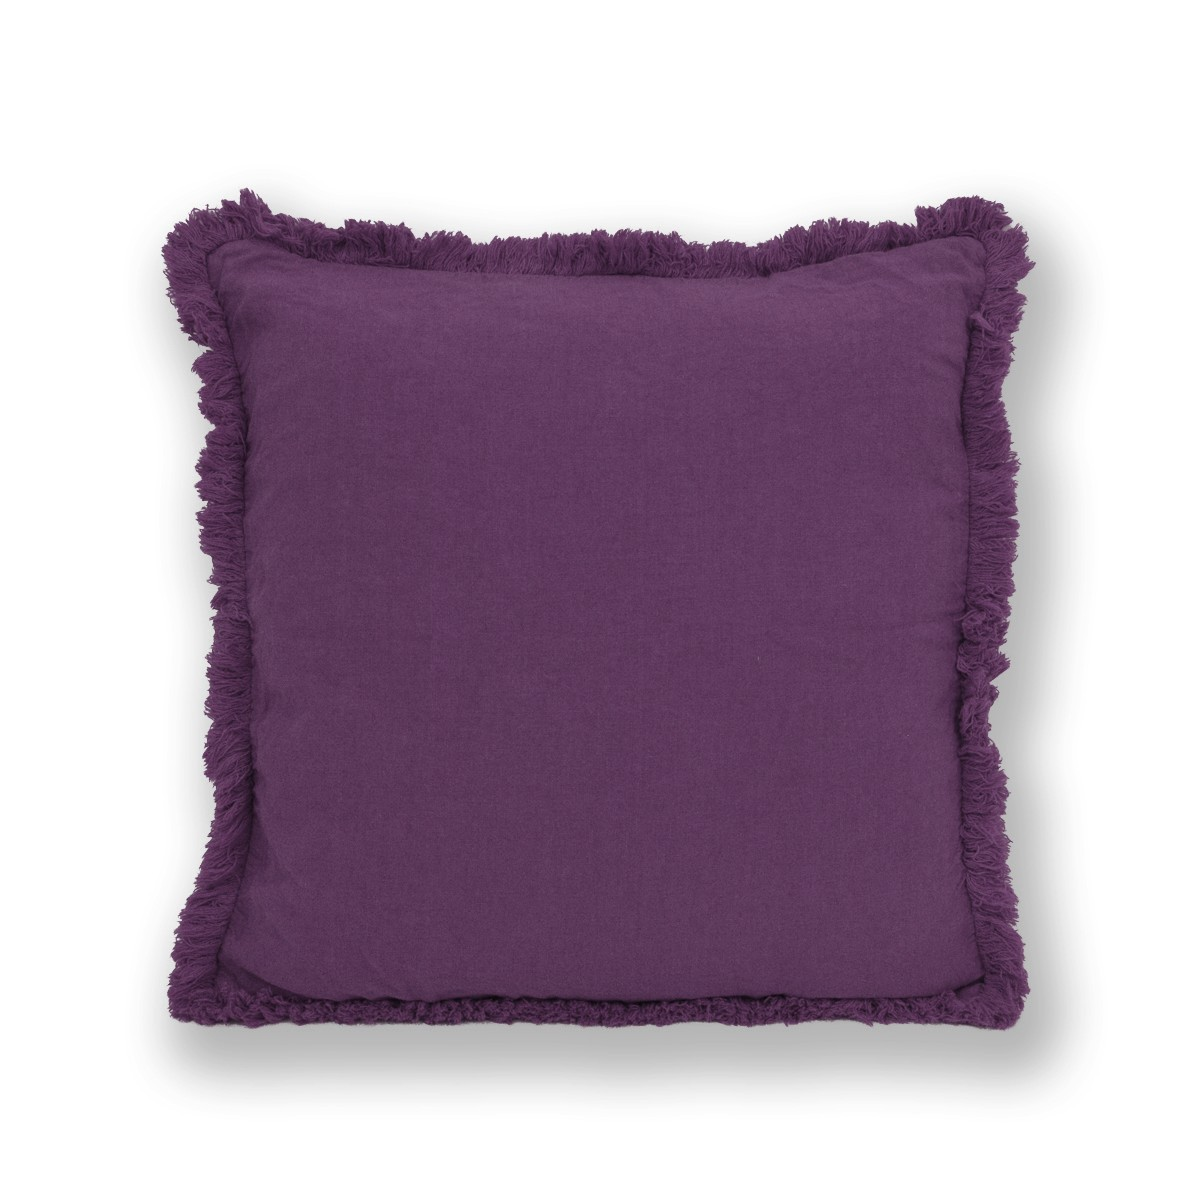 Decorative Pillow, Lovelinen